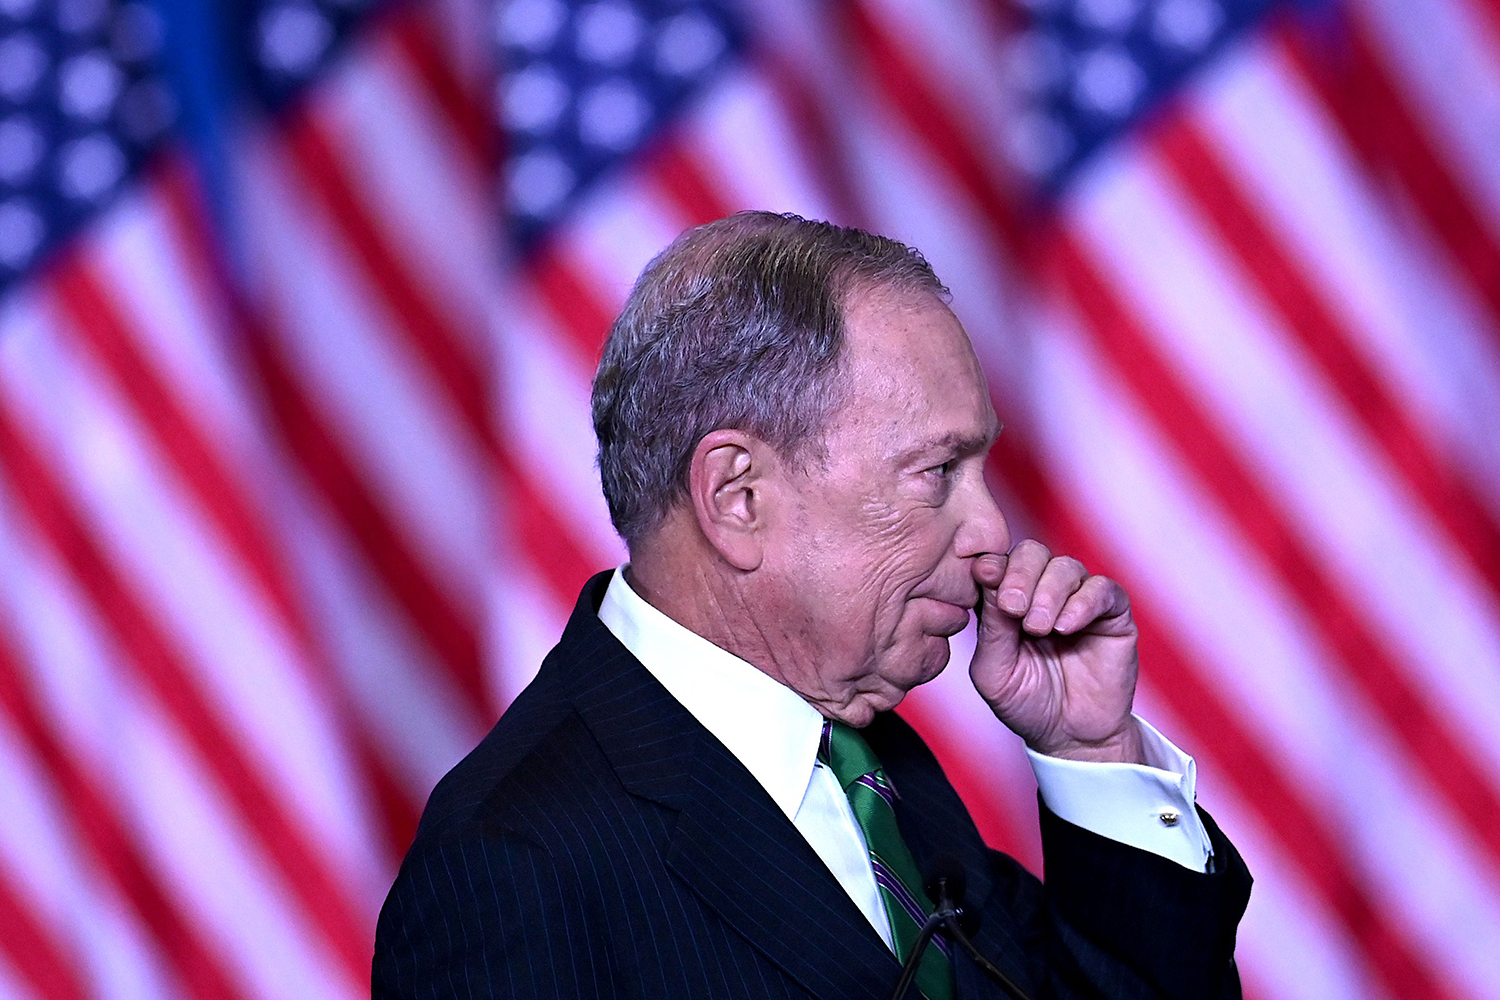 Former New York City Mayor Mike Bloomberg speaks to supporters and staff March 4 in New York City as he ends his candidacy for U.S. president. JOHANNES EISELE/AFP via Getty Images